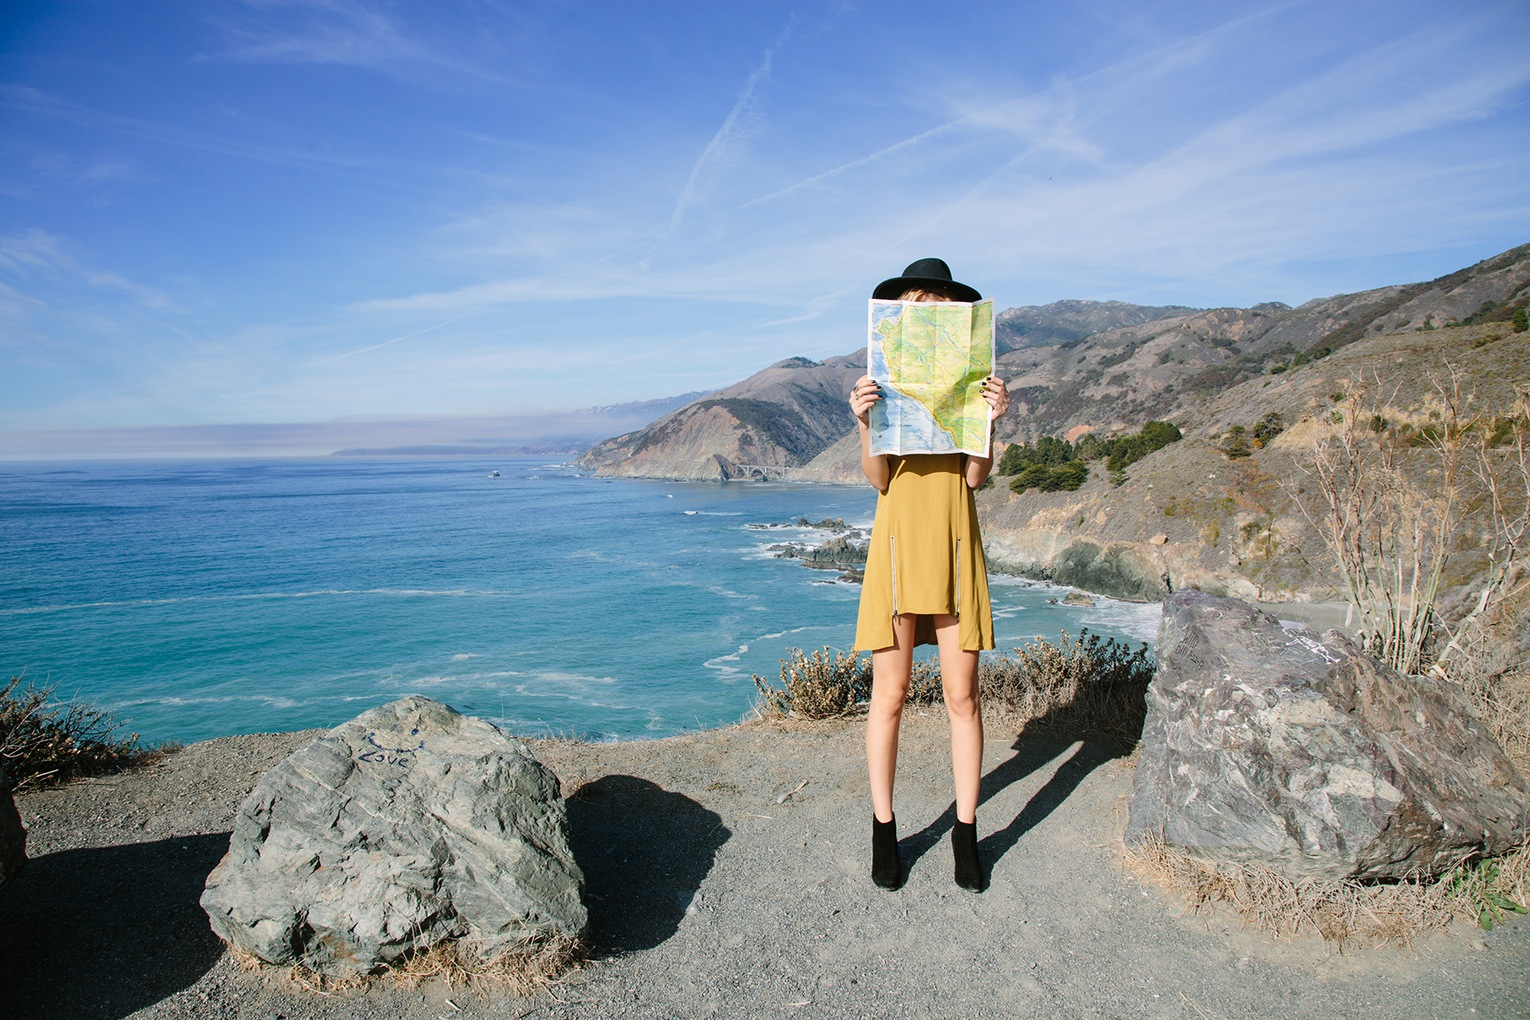 Travel Tips for When the Road Goes on Forever